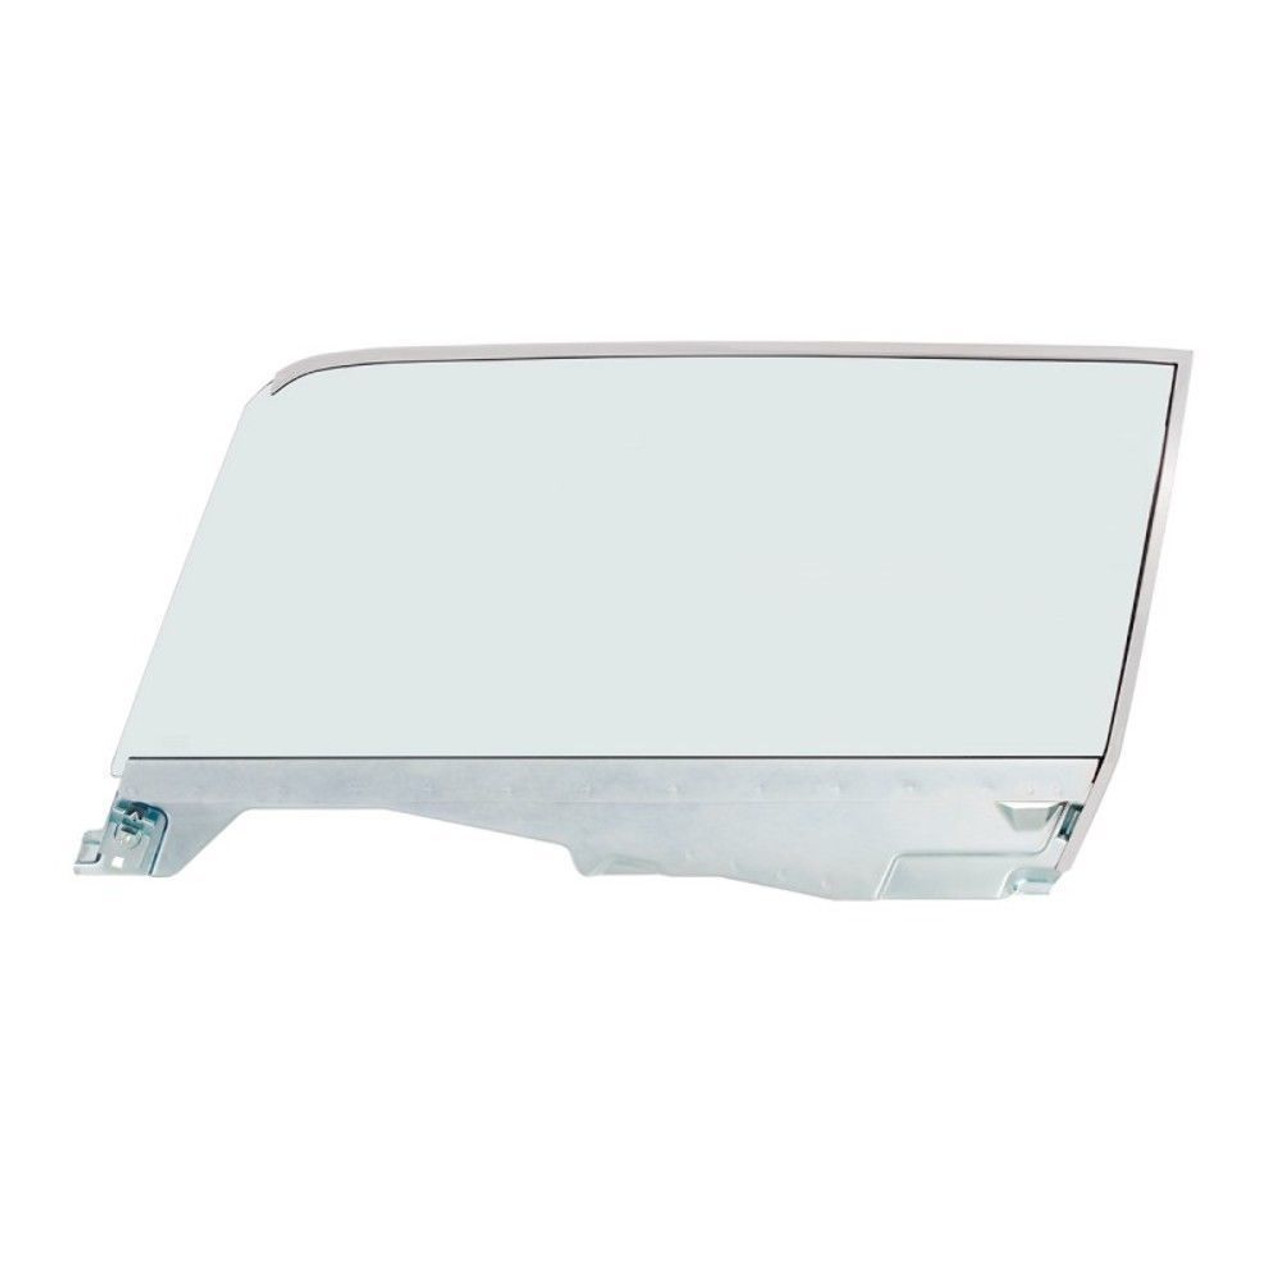 Complete Tint Door Glass Assembly For 1965-66 Ford Mustang Coupe - L/H